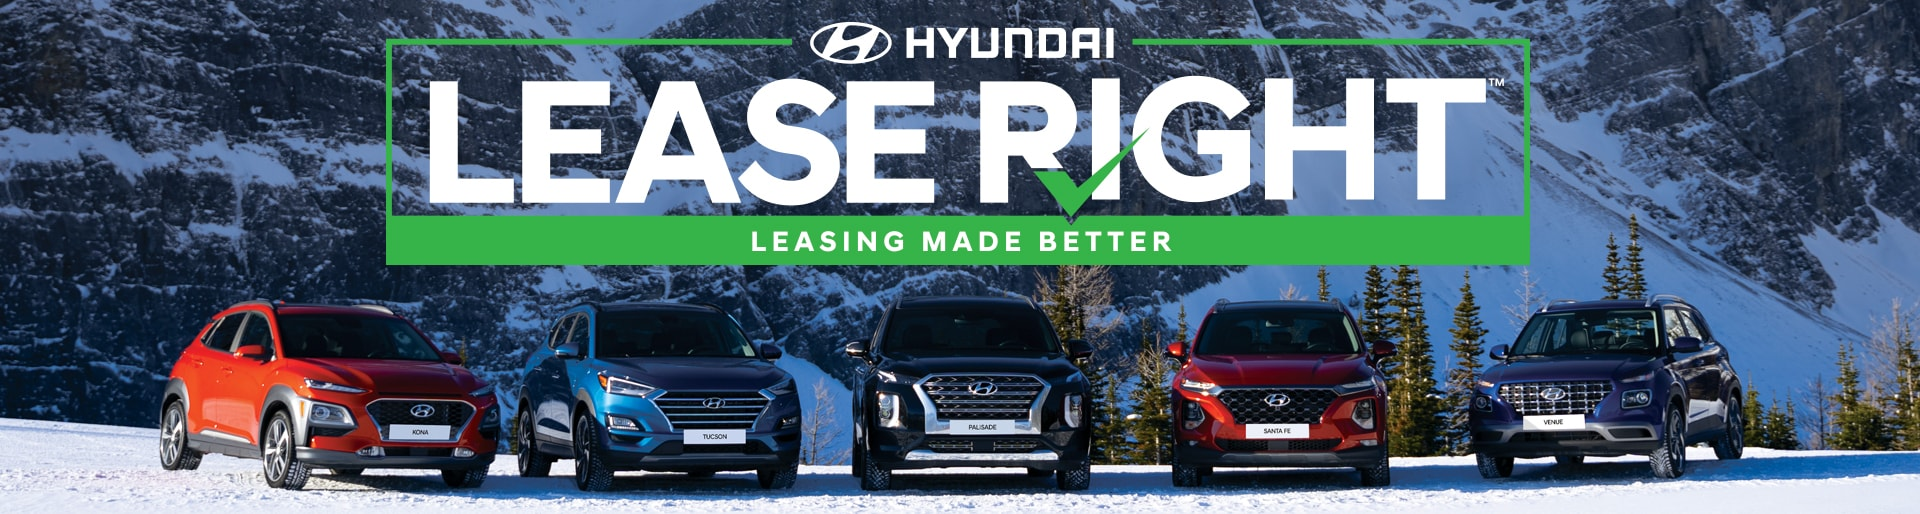 Hyundai - Lease Right - Leasing Made Better